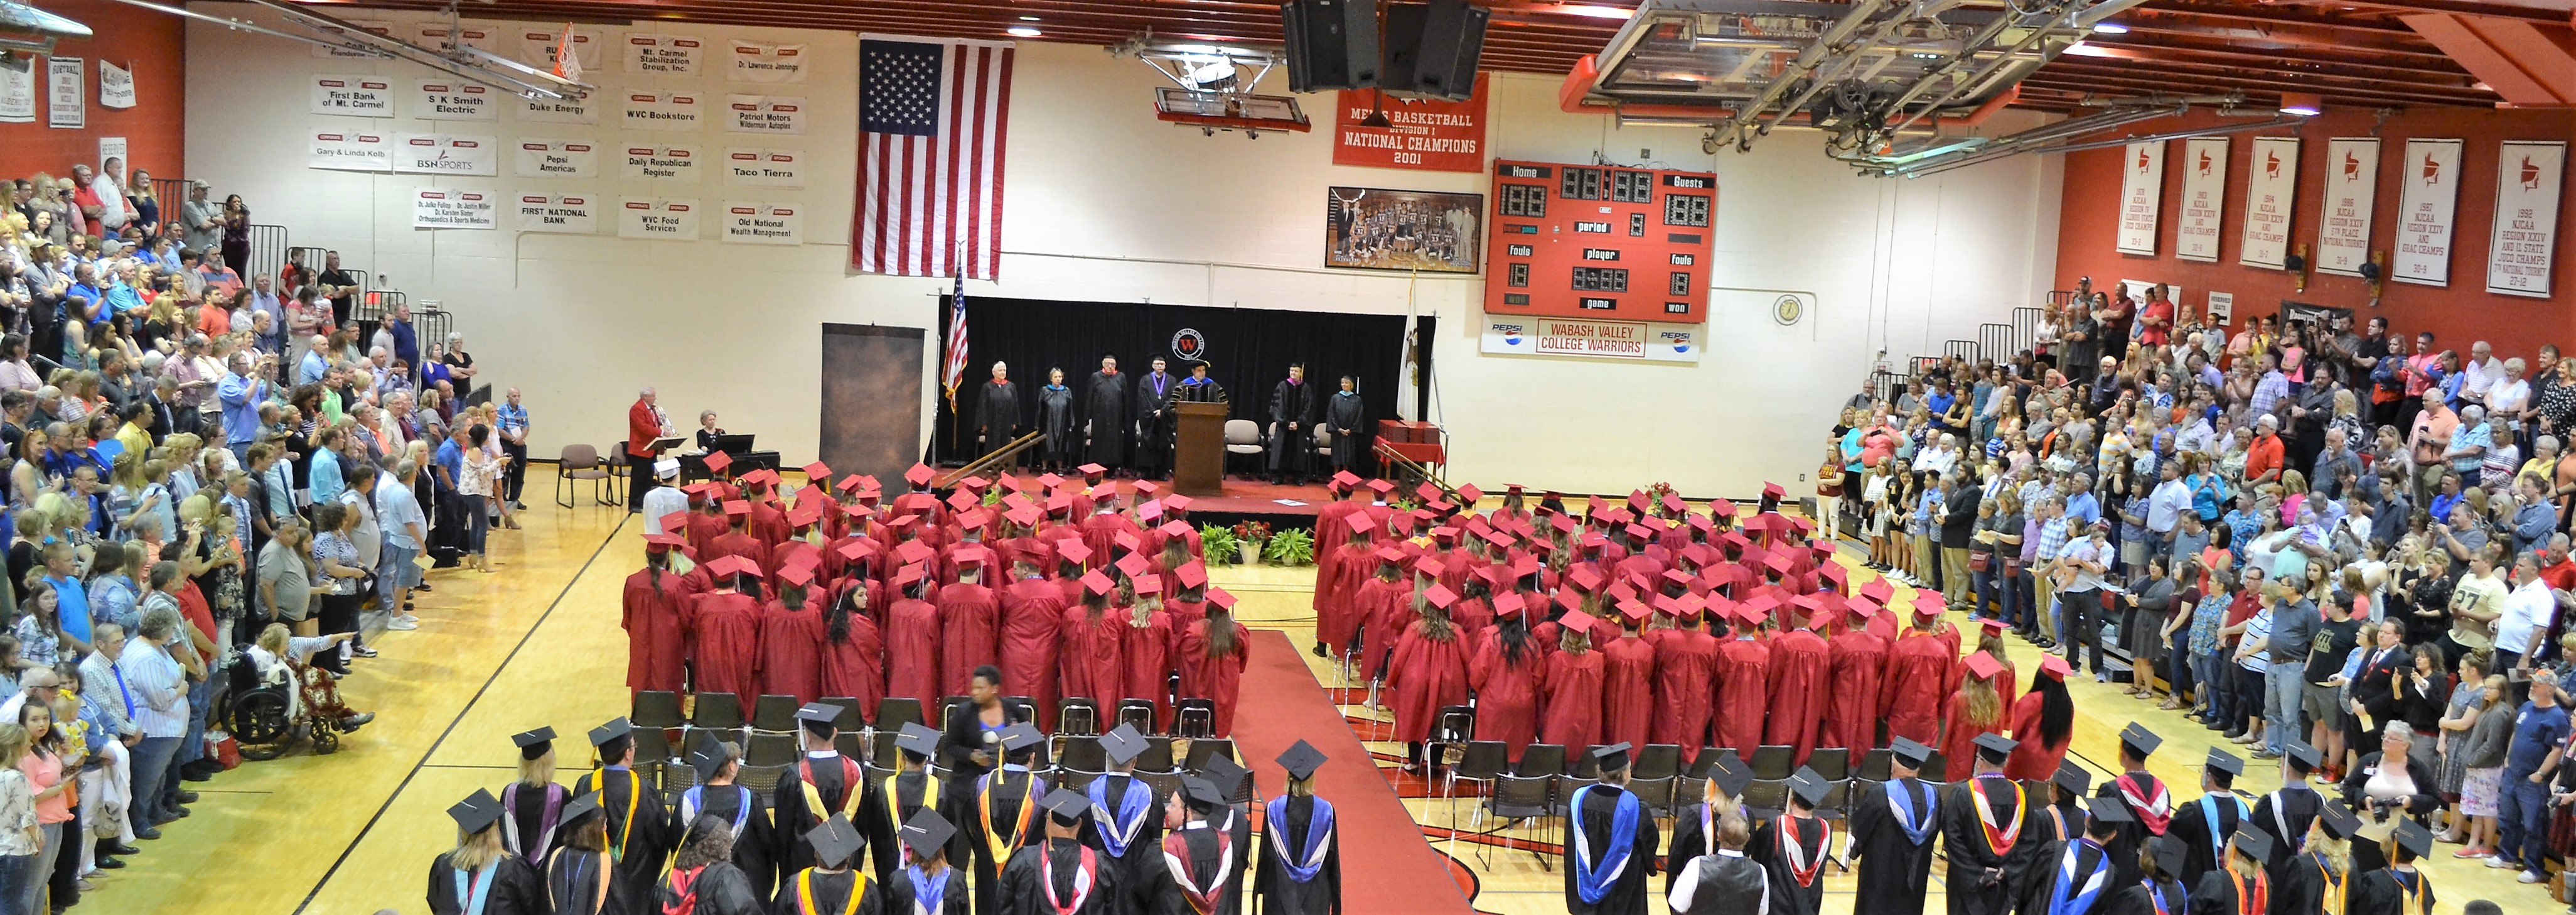 Photo of WVC Graduation in the Spencer Sports Center